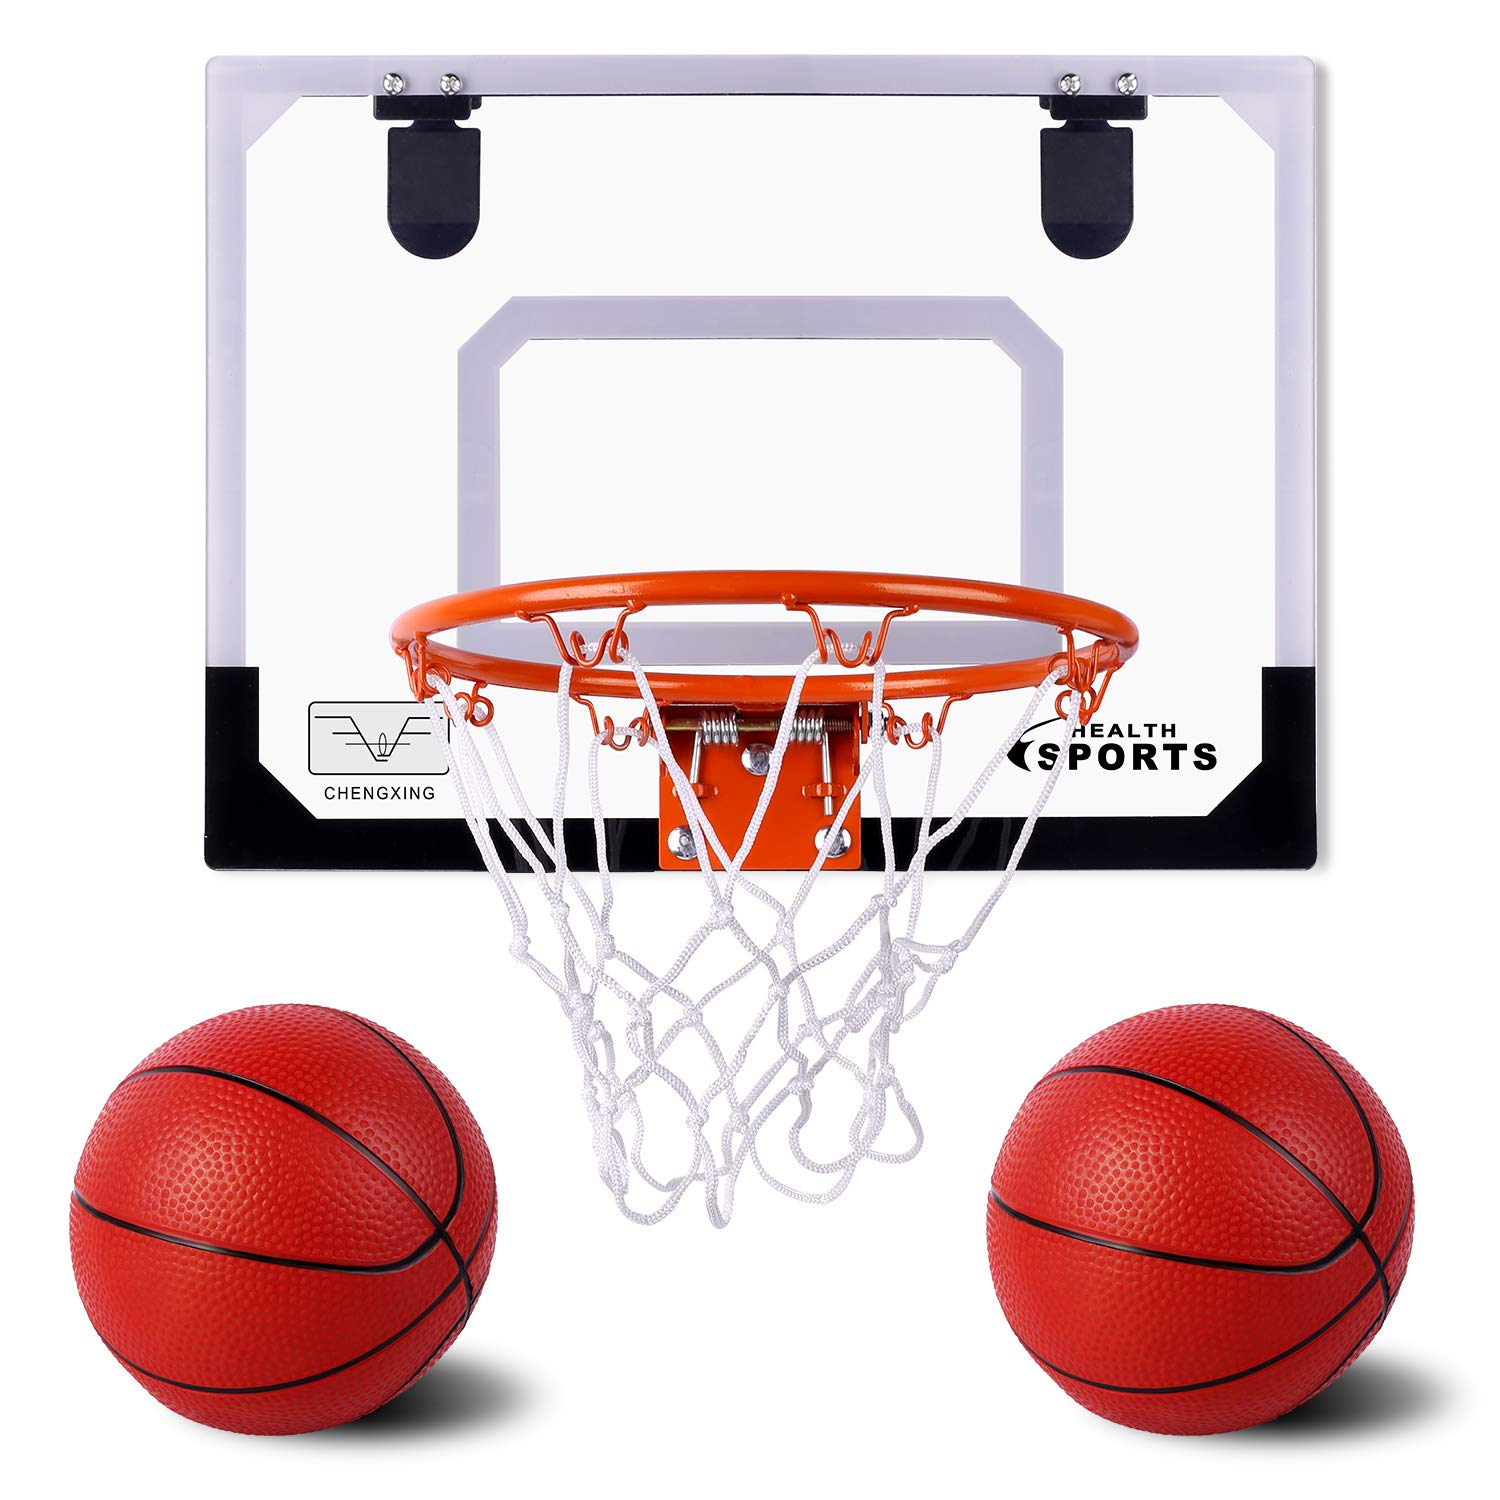 Super Joy Indoor Mini Basketball Hoop and Balls 17.8'' x 14'' - Basketball Hoop for Door Set - Indoor Mini Basketball Game for Kids by Super Joy